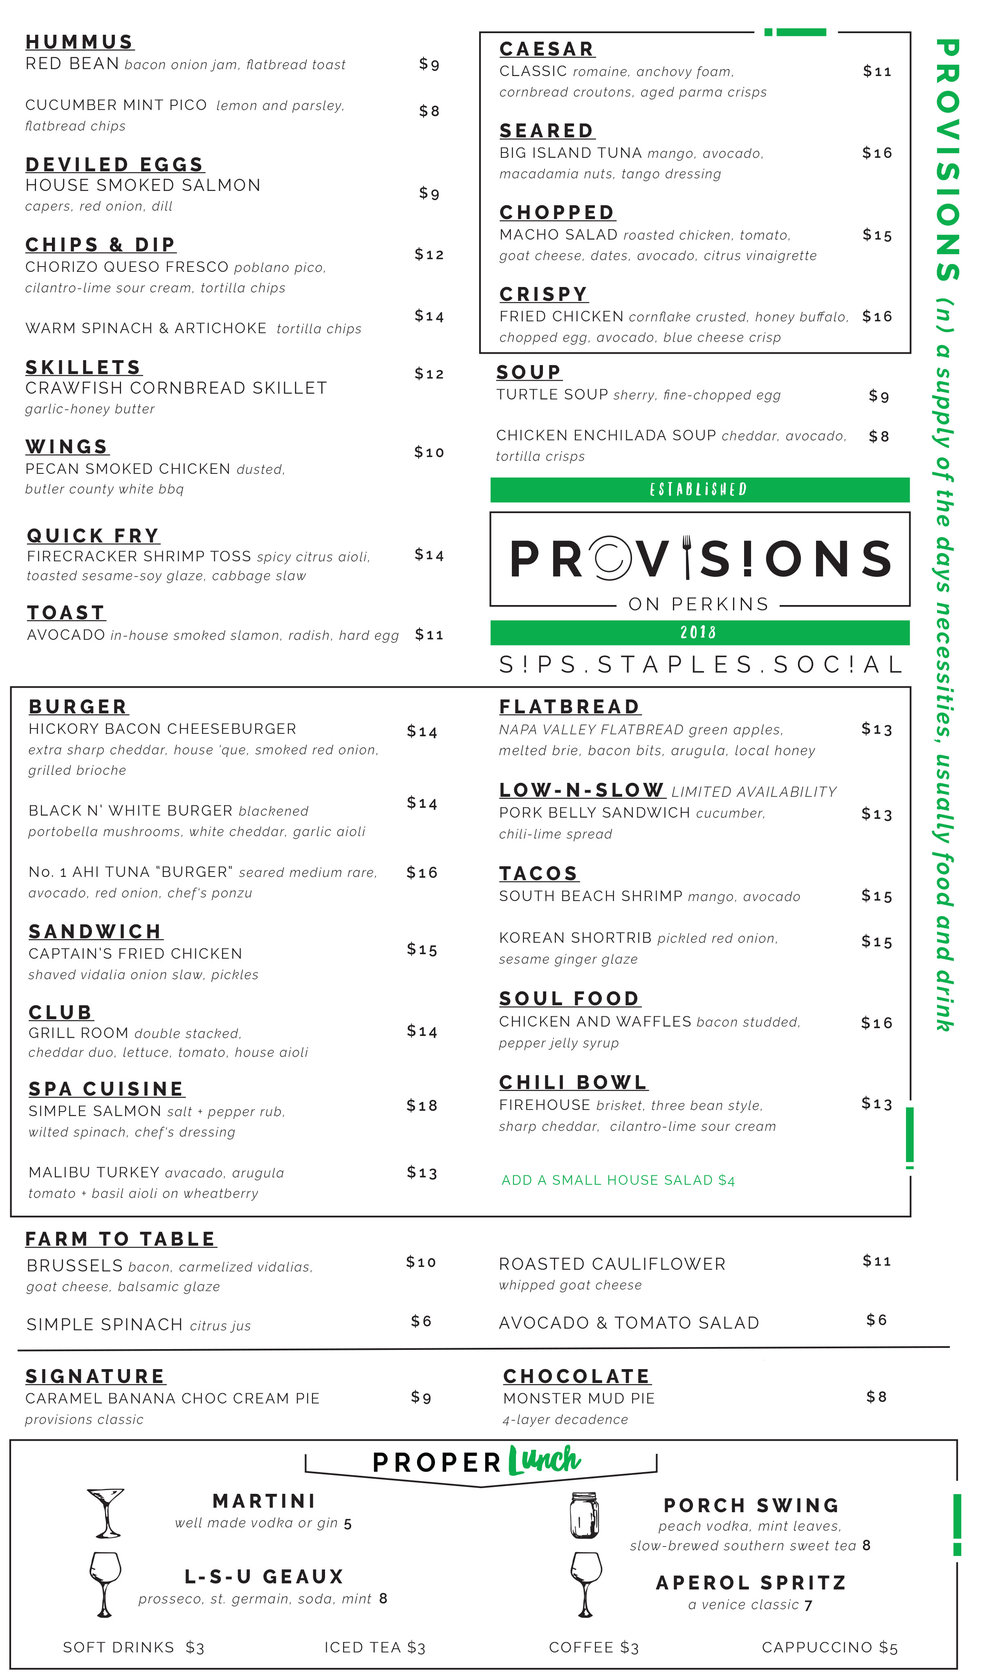 A-Provisions-LUNCH-MENU-FRONT-102918.jpg